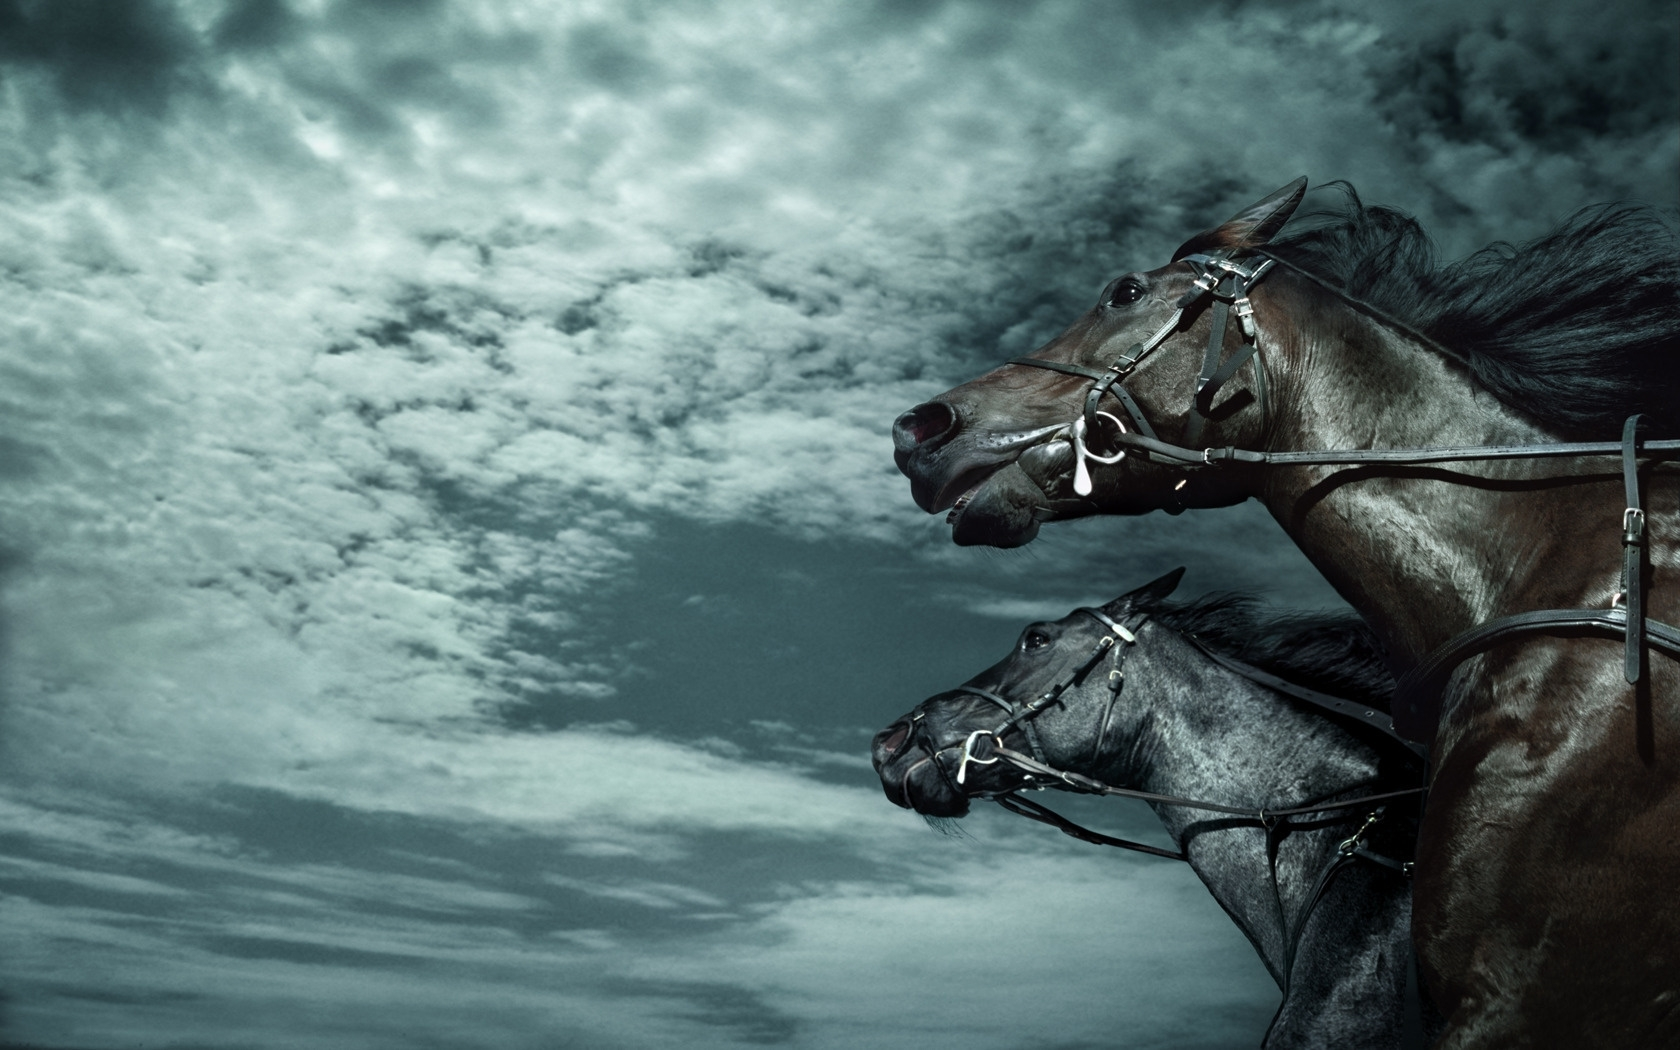 45295 download wallpaper Animals, Horses screensavers and pictures for free